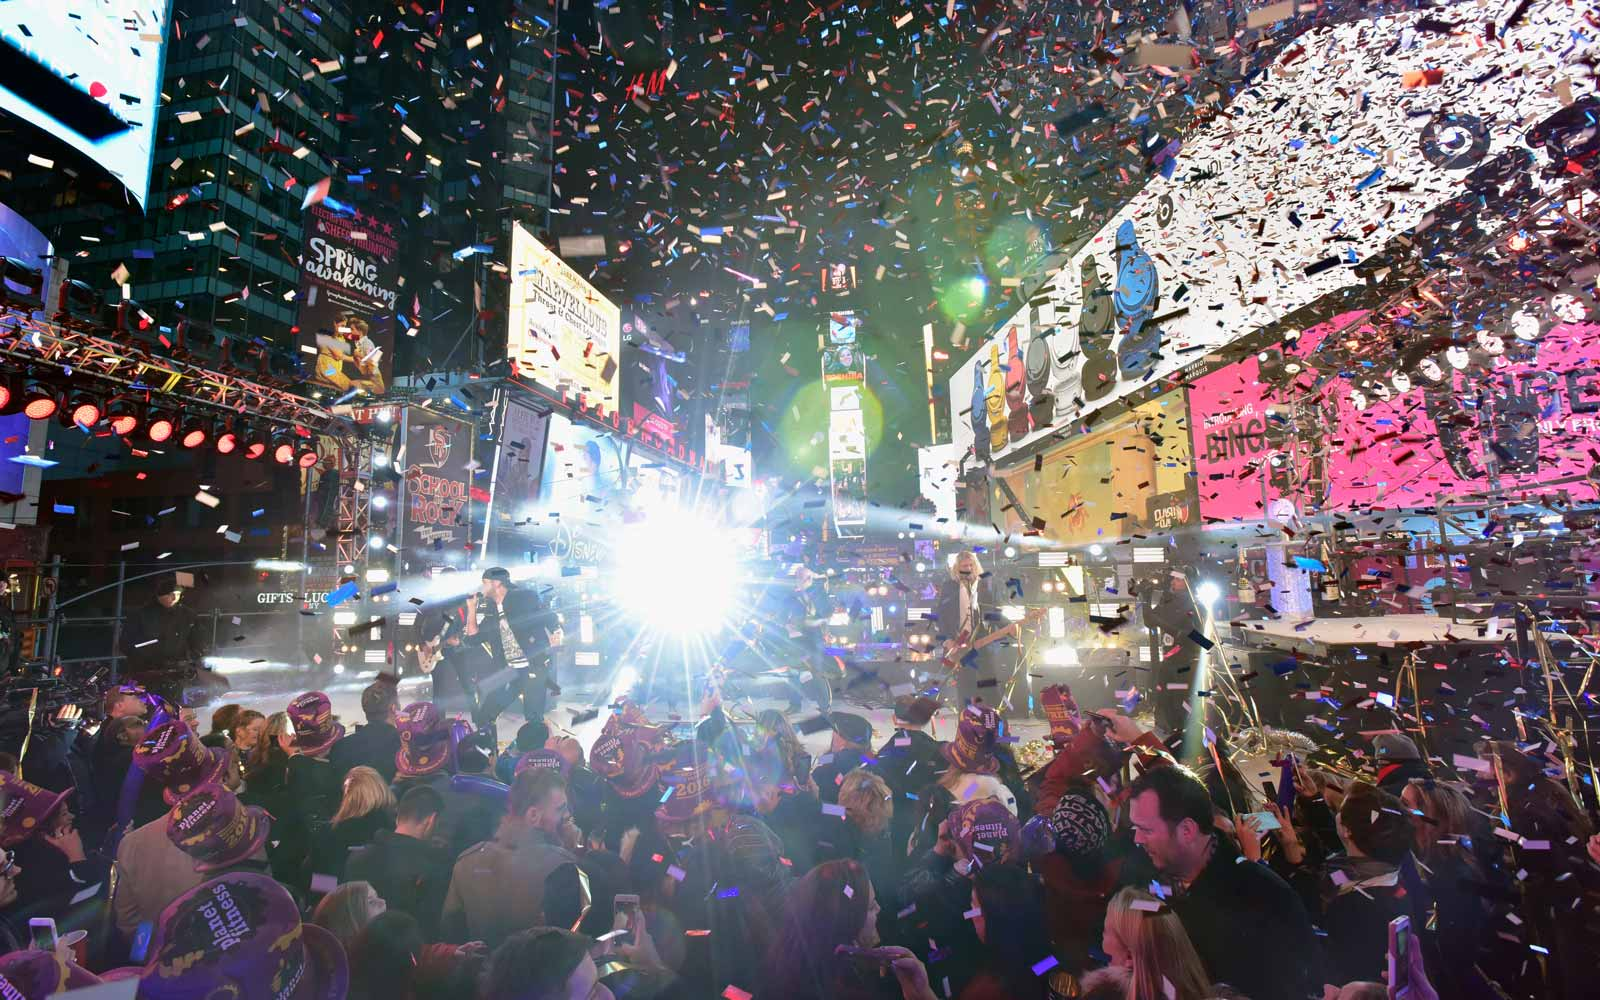 New Years Eve in New York City's Times Square